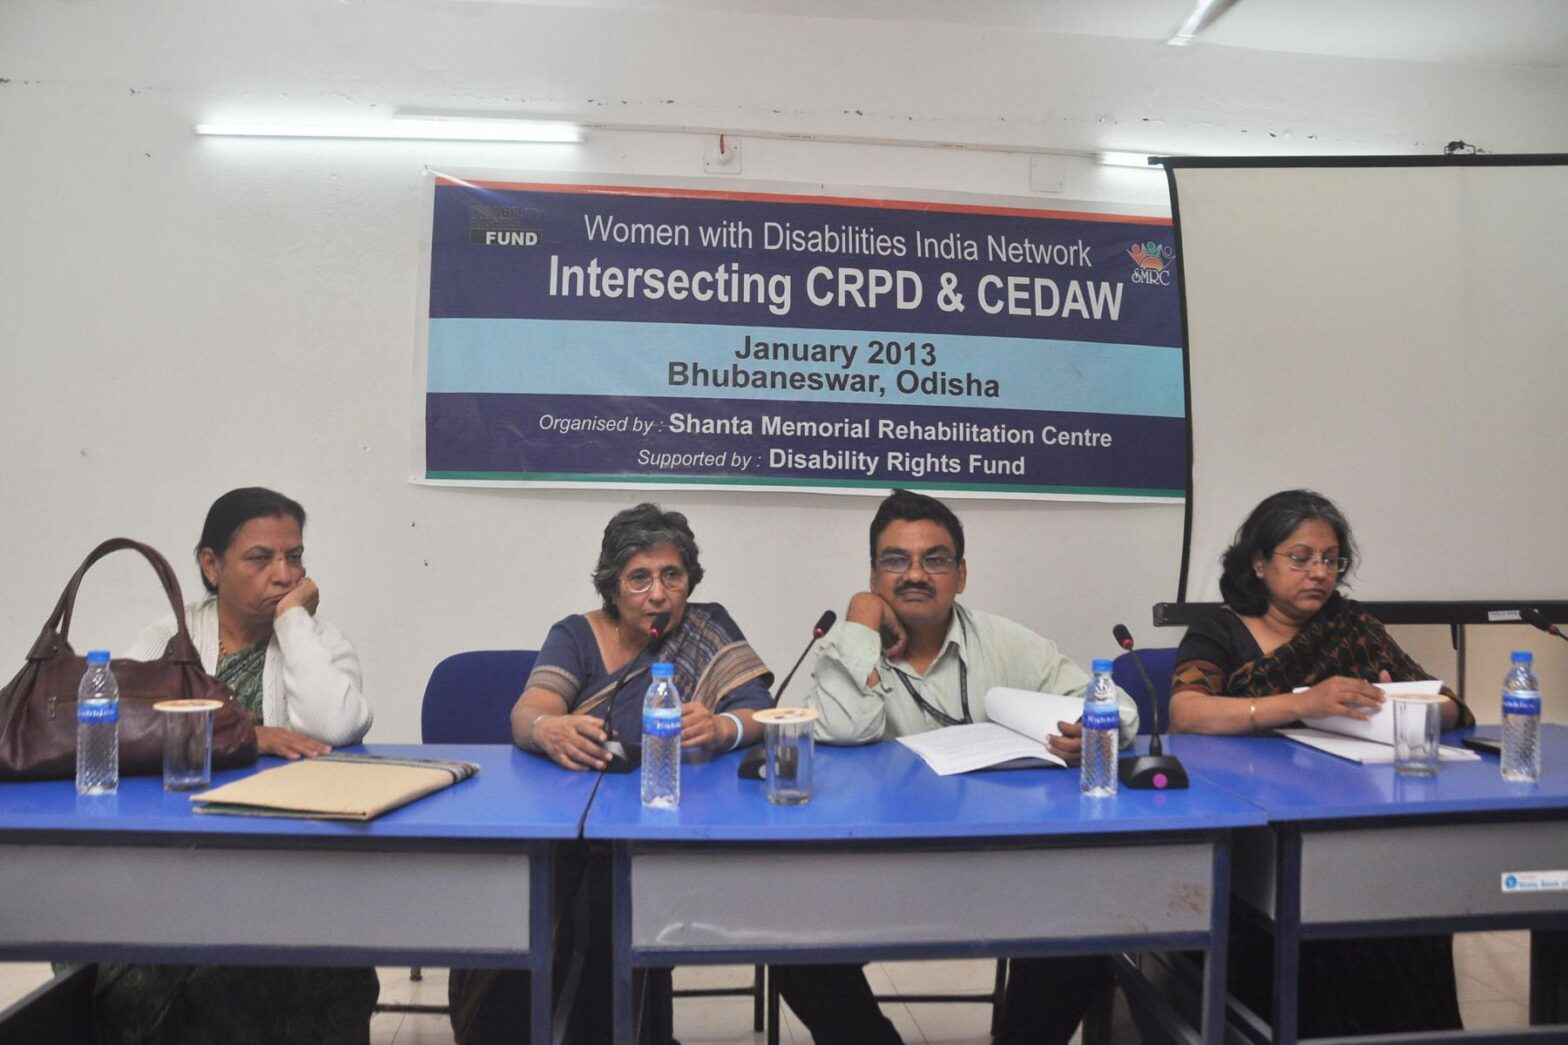 Prof. Asha Hans speaking during an event